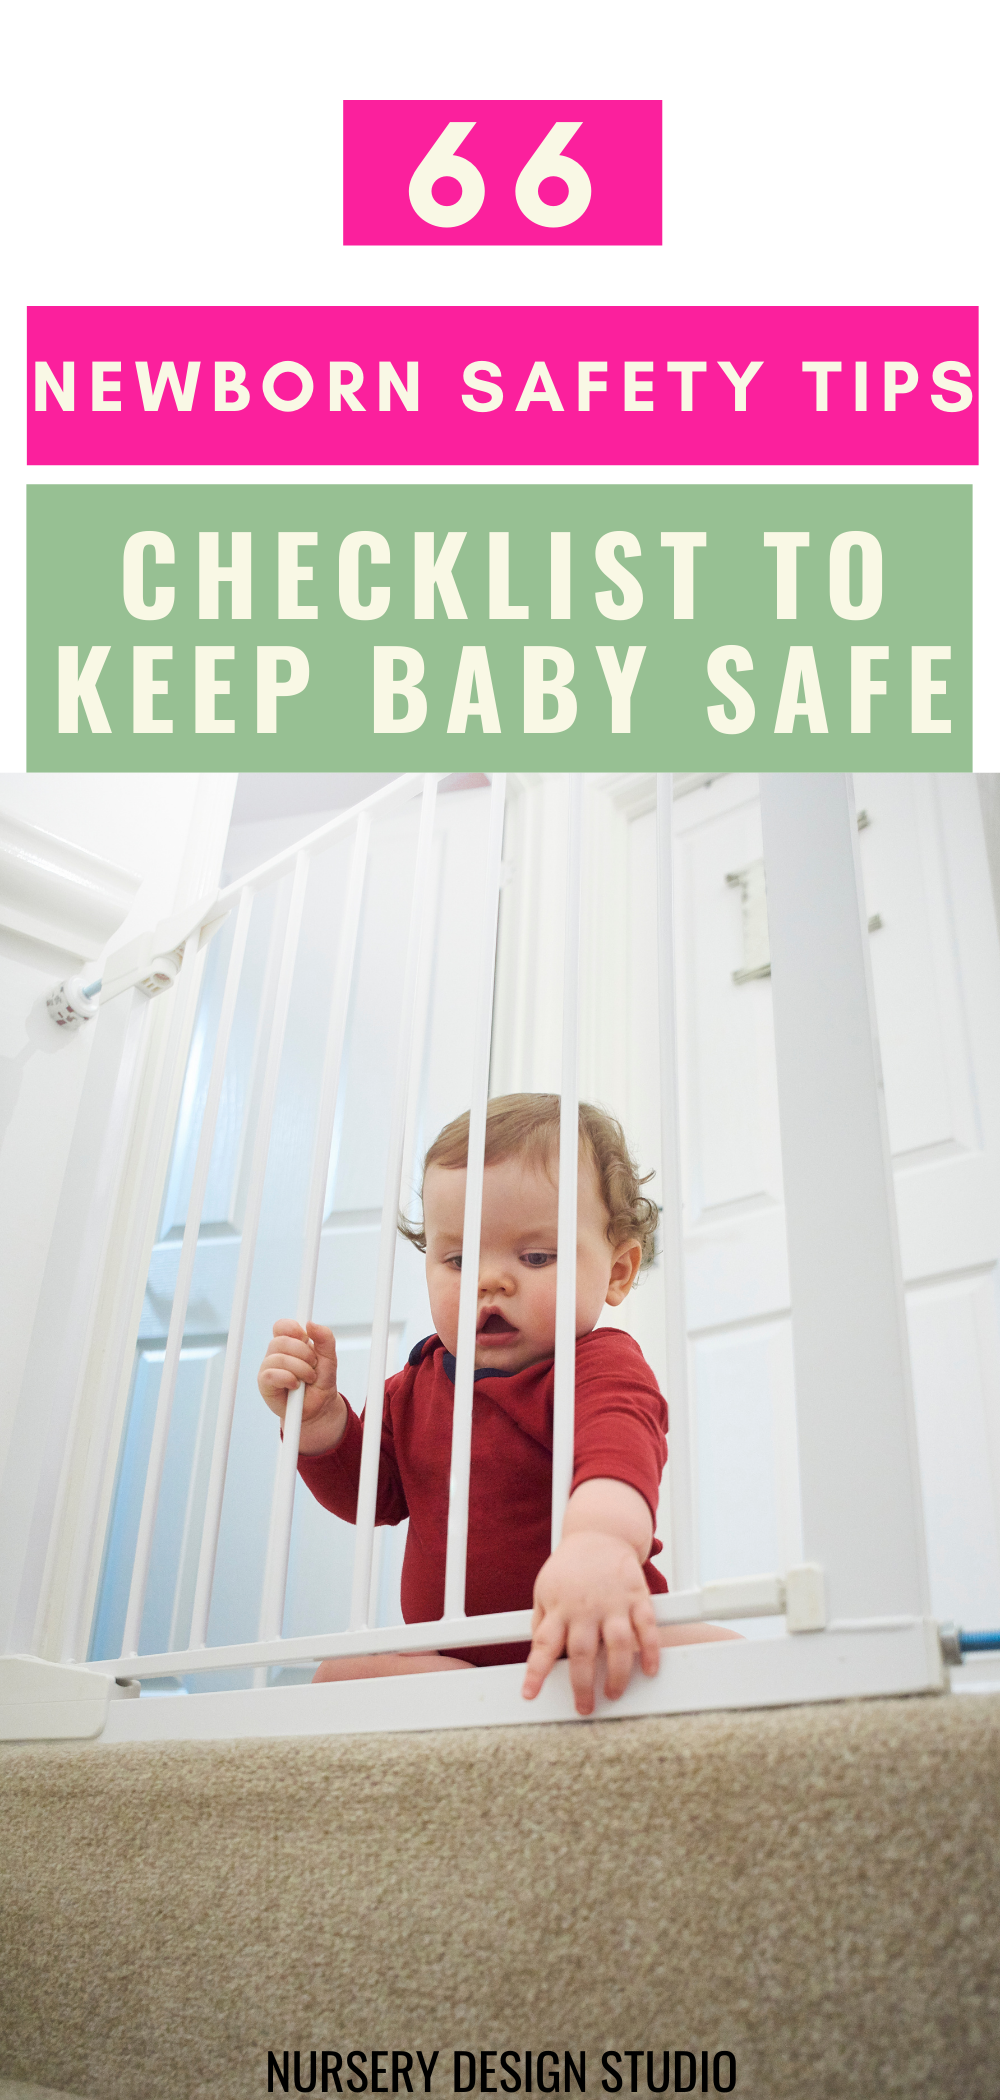 66 NEWBORN SAFETY TIPS + NEWBORN SAFETY CHECKLIST